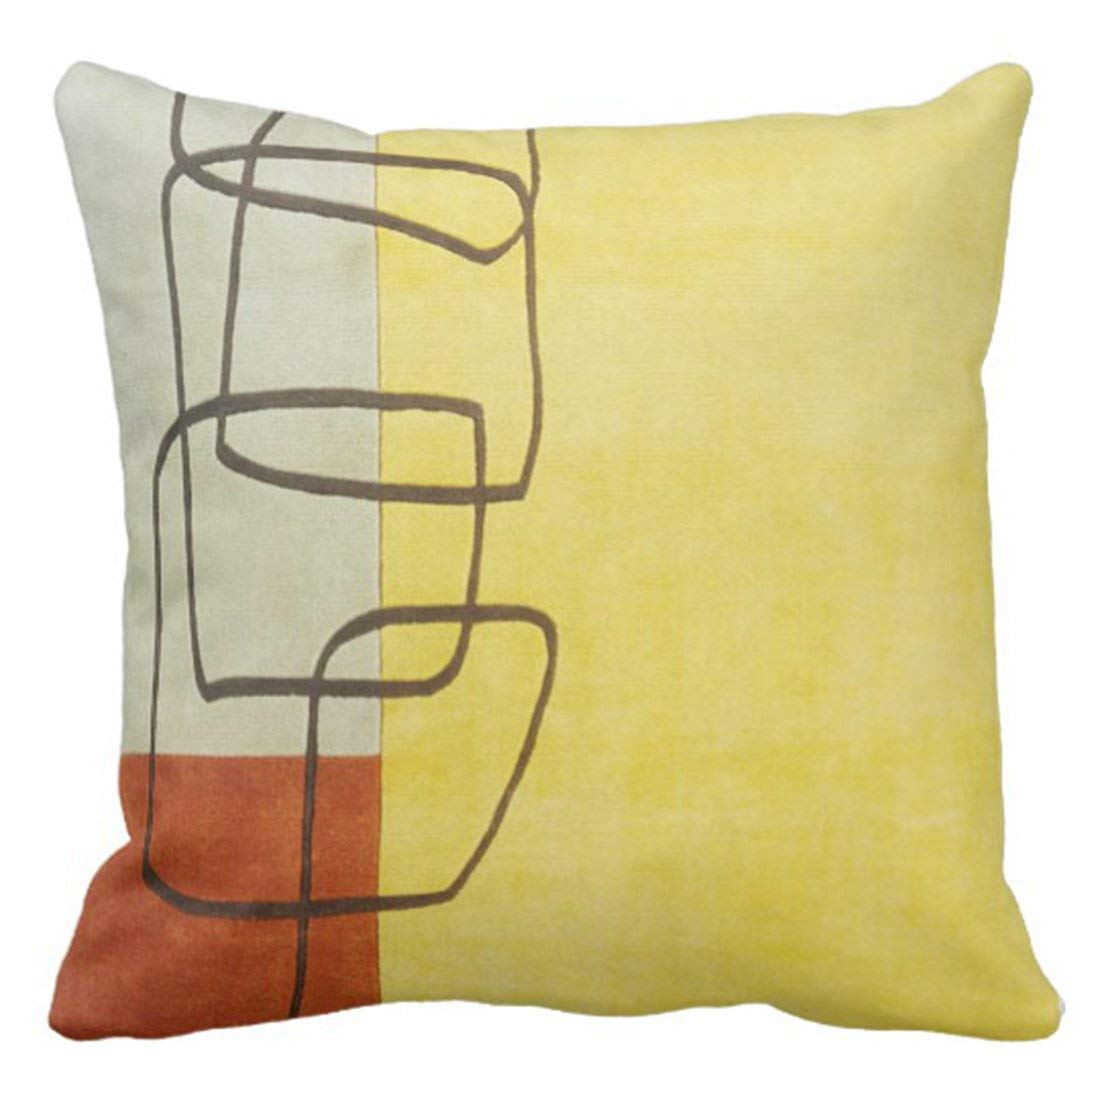 WOPOP Green Leather Orange and Yellow Stripes Red Look Pillowcase Cushion Cover 18x18 inches